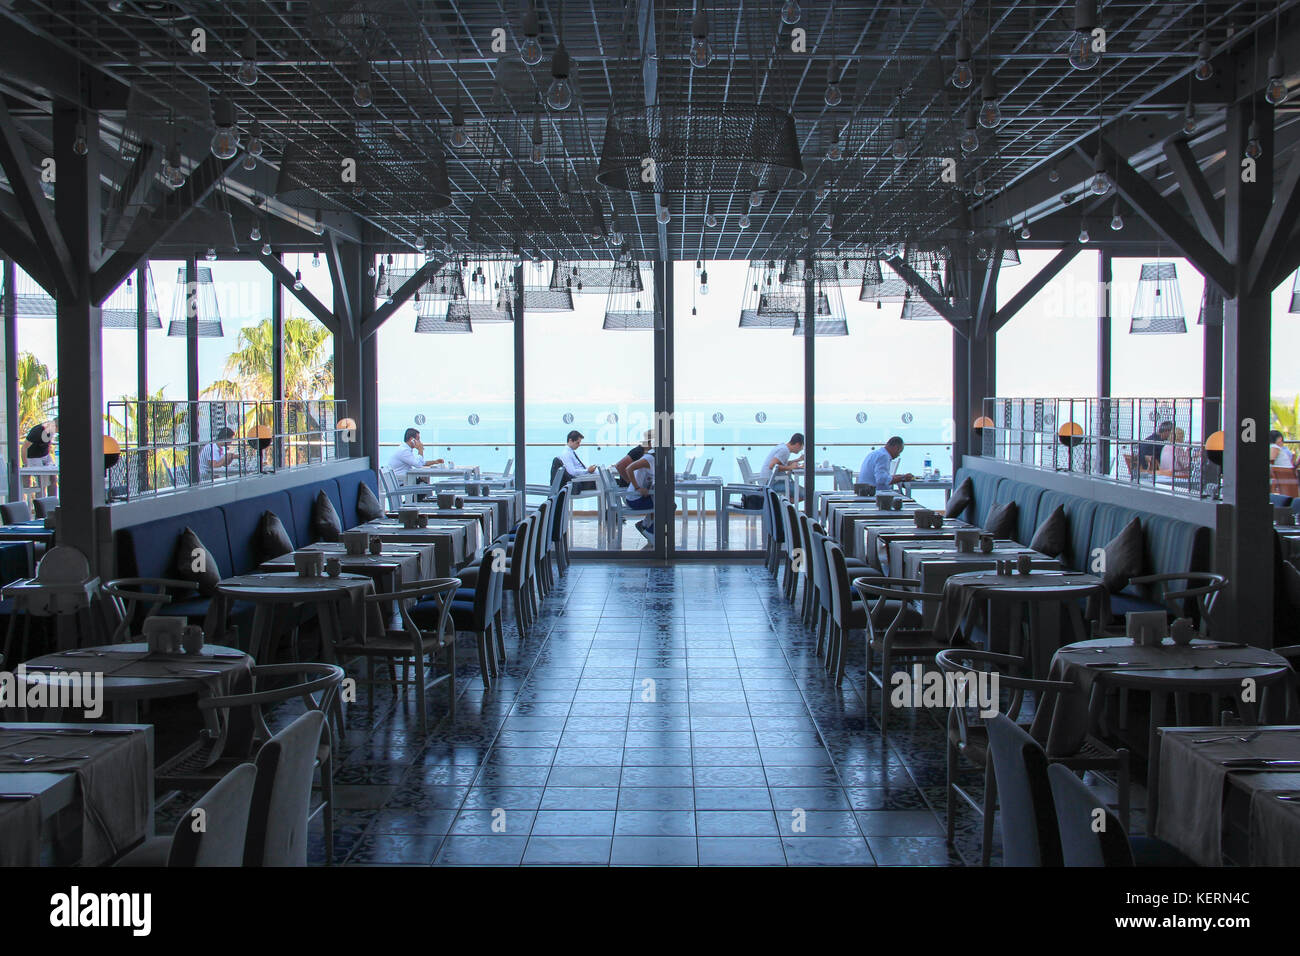 The restaurant at the five star hotel Ramada Plaza, morning, empty tables, sea view - Stock Image